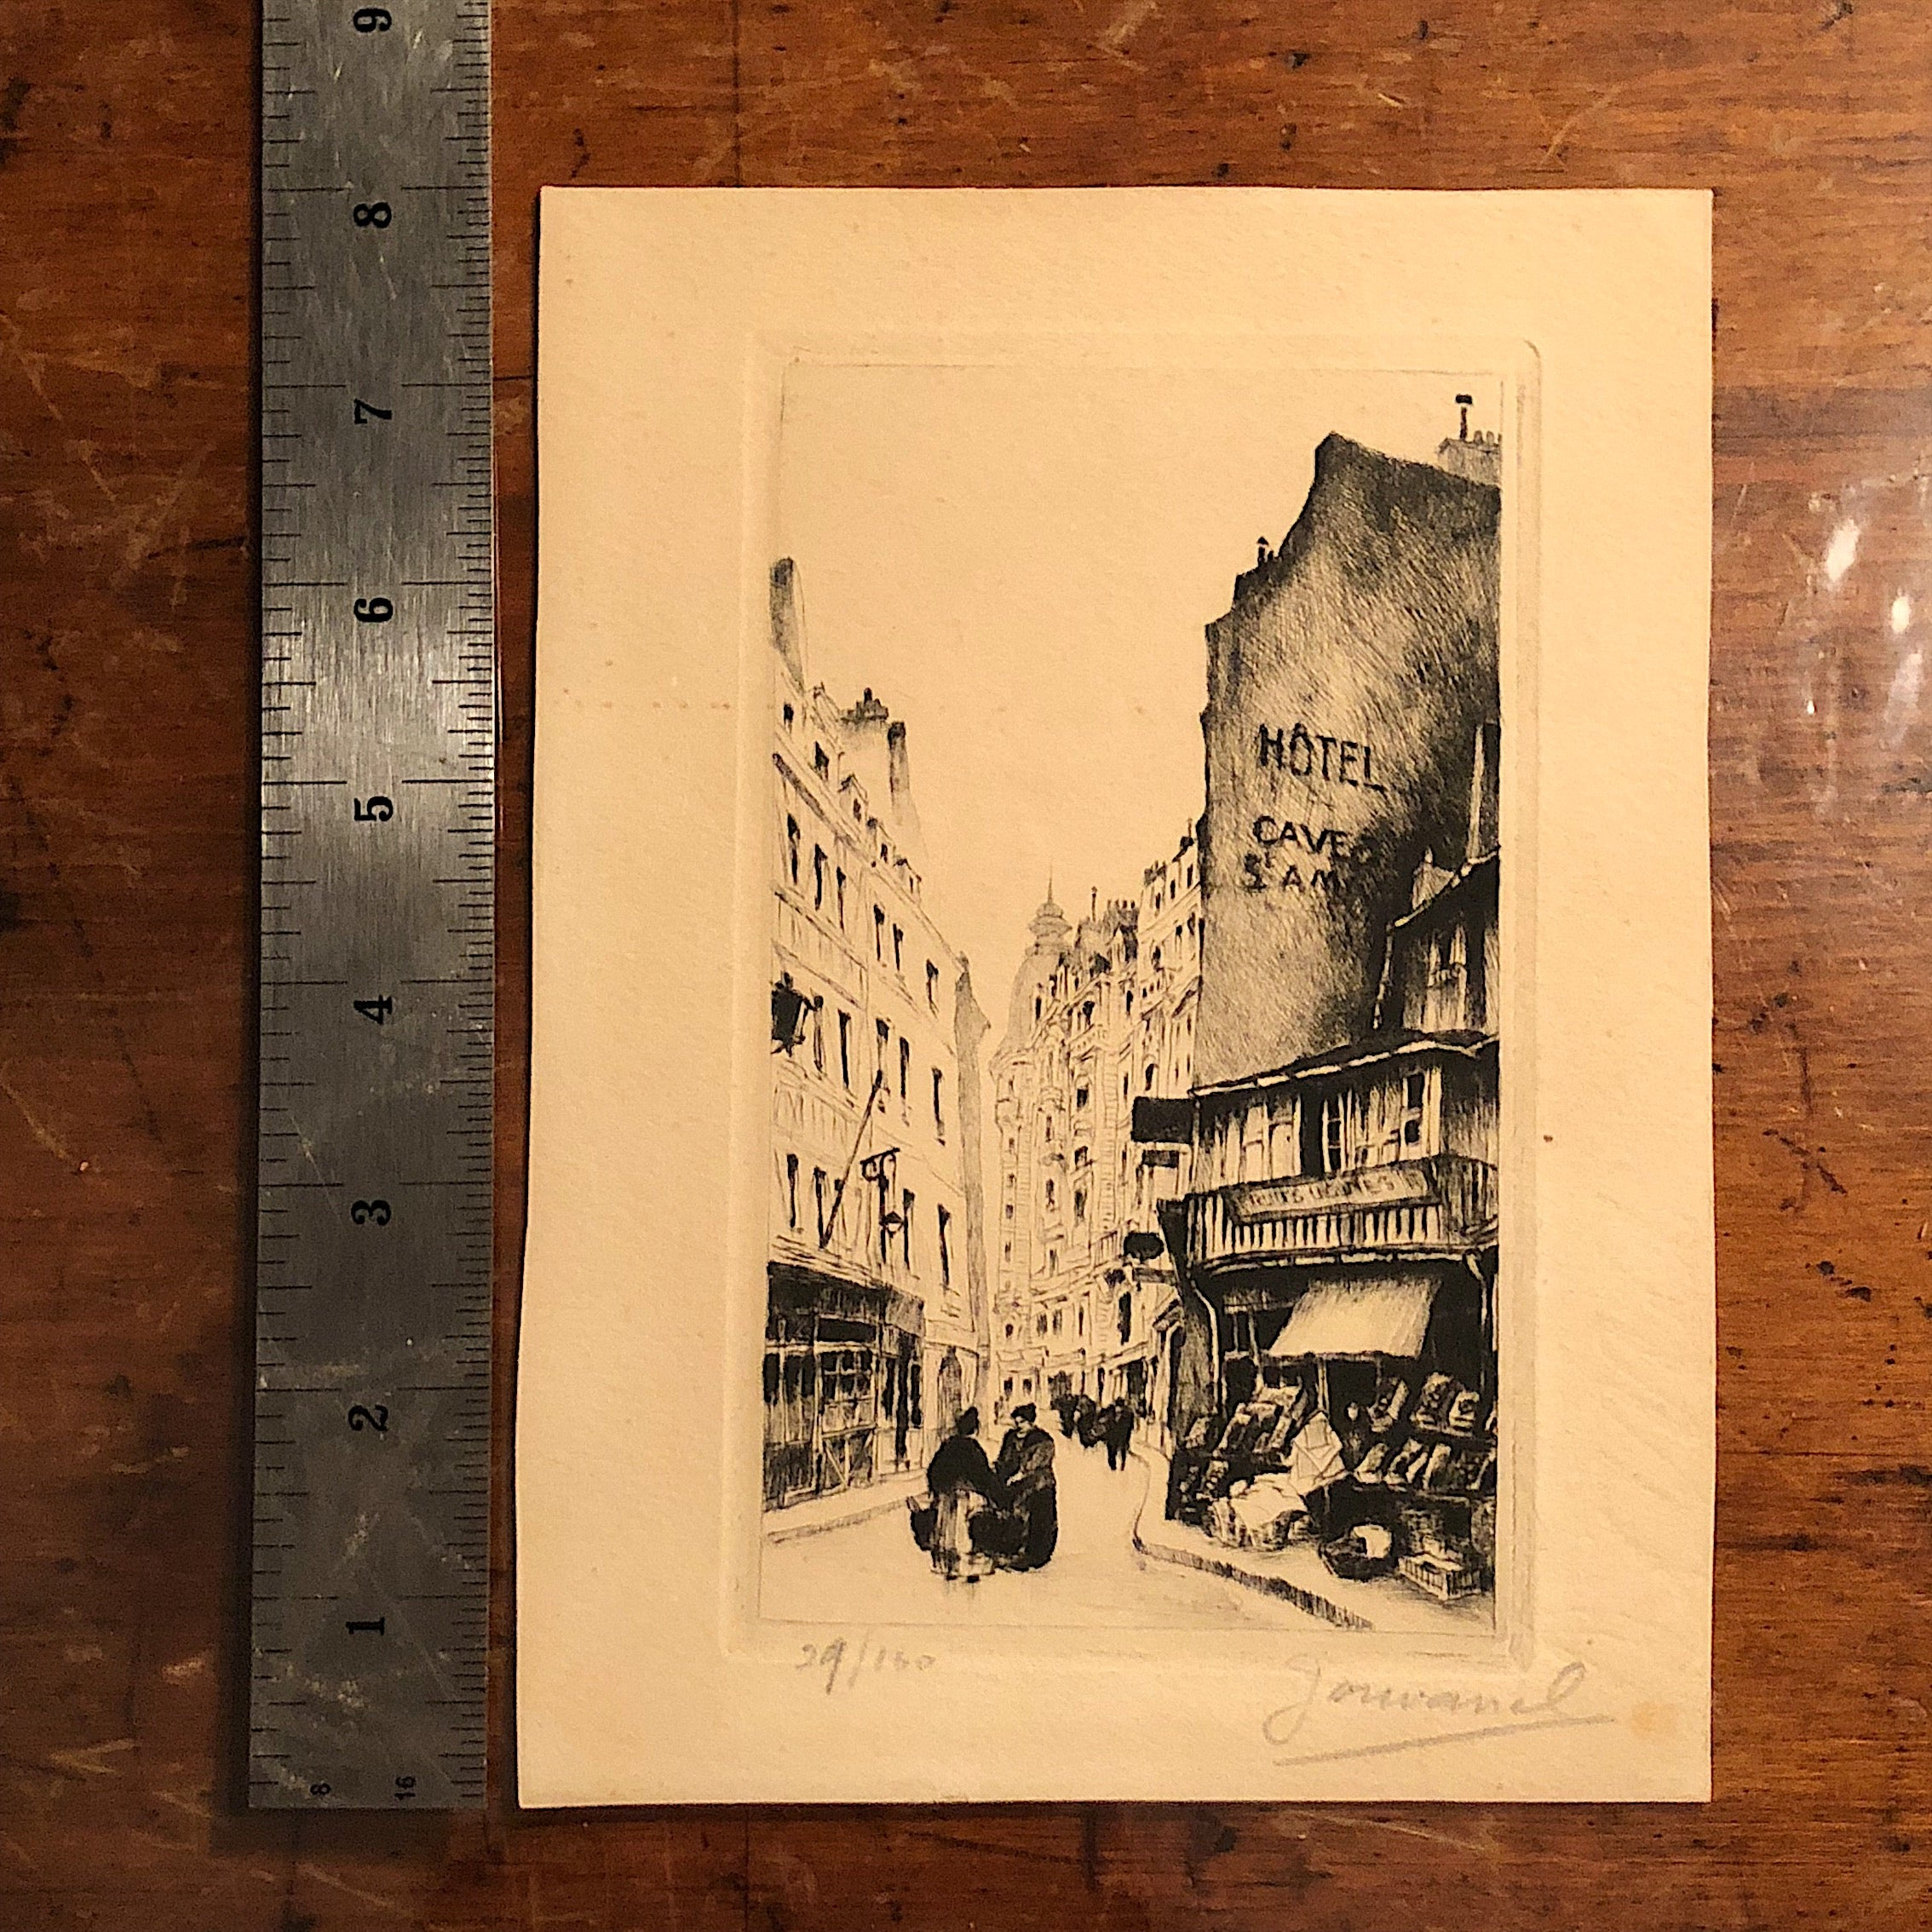 European Etching of Street Scene - Pencil Signed